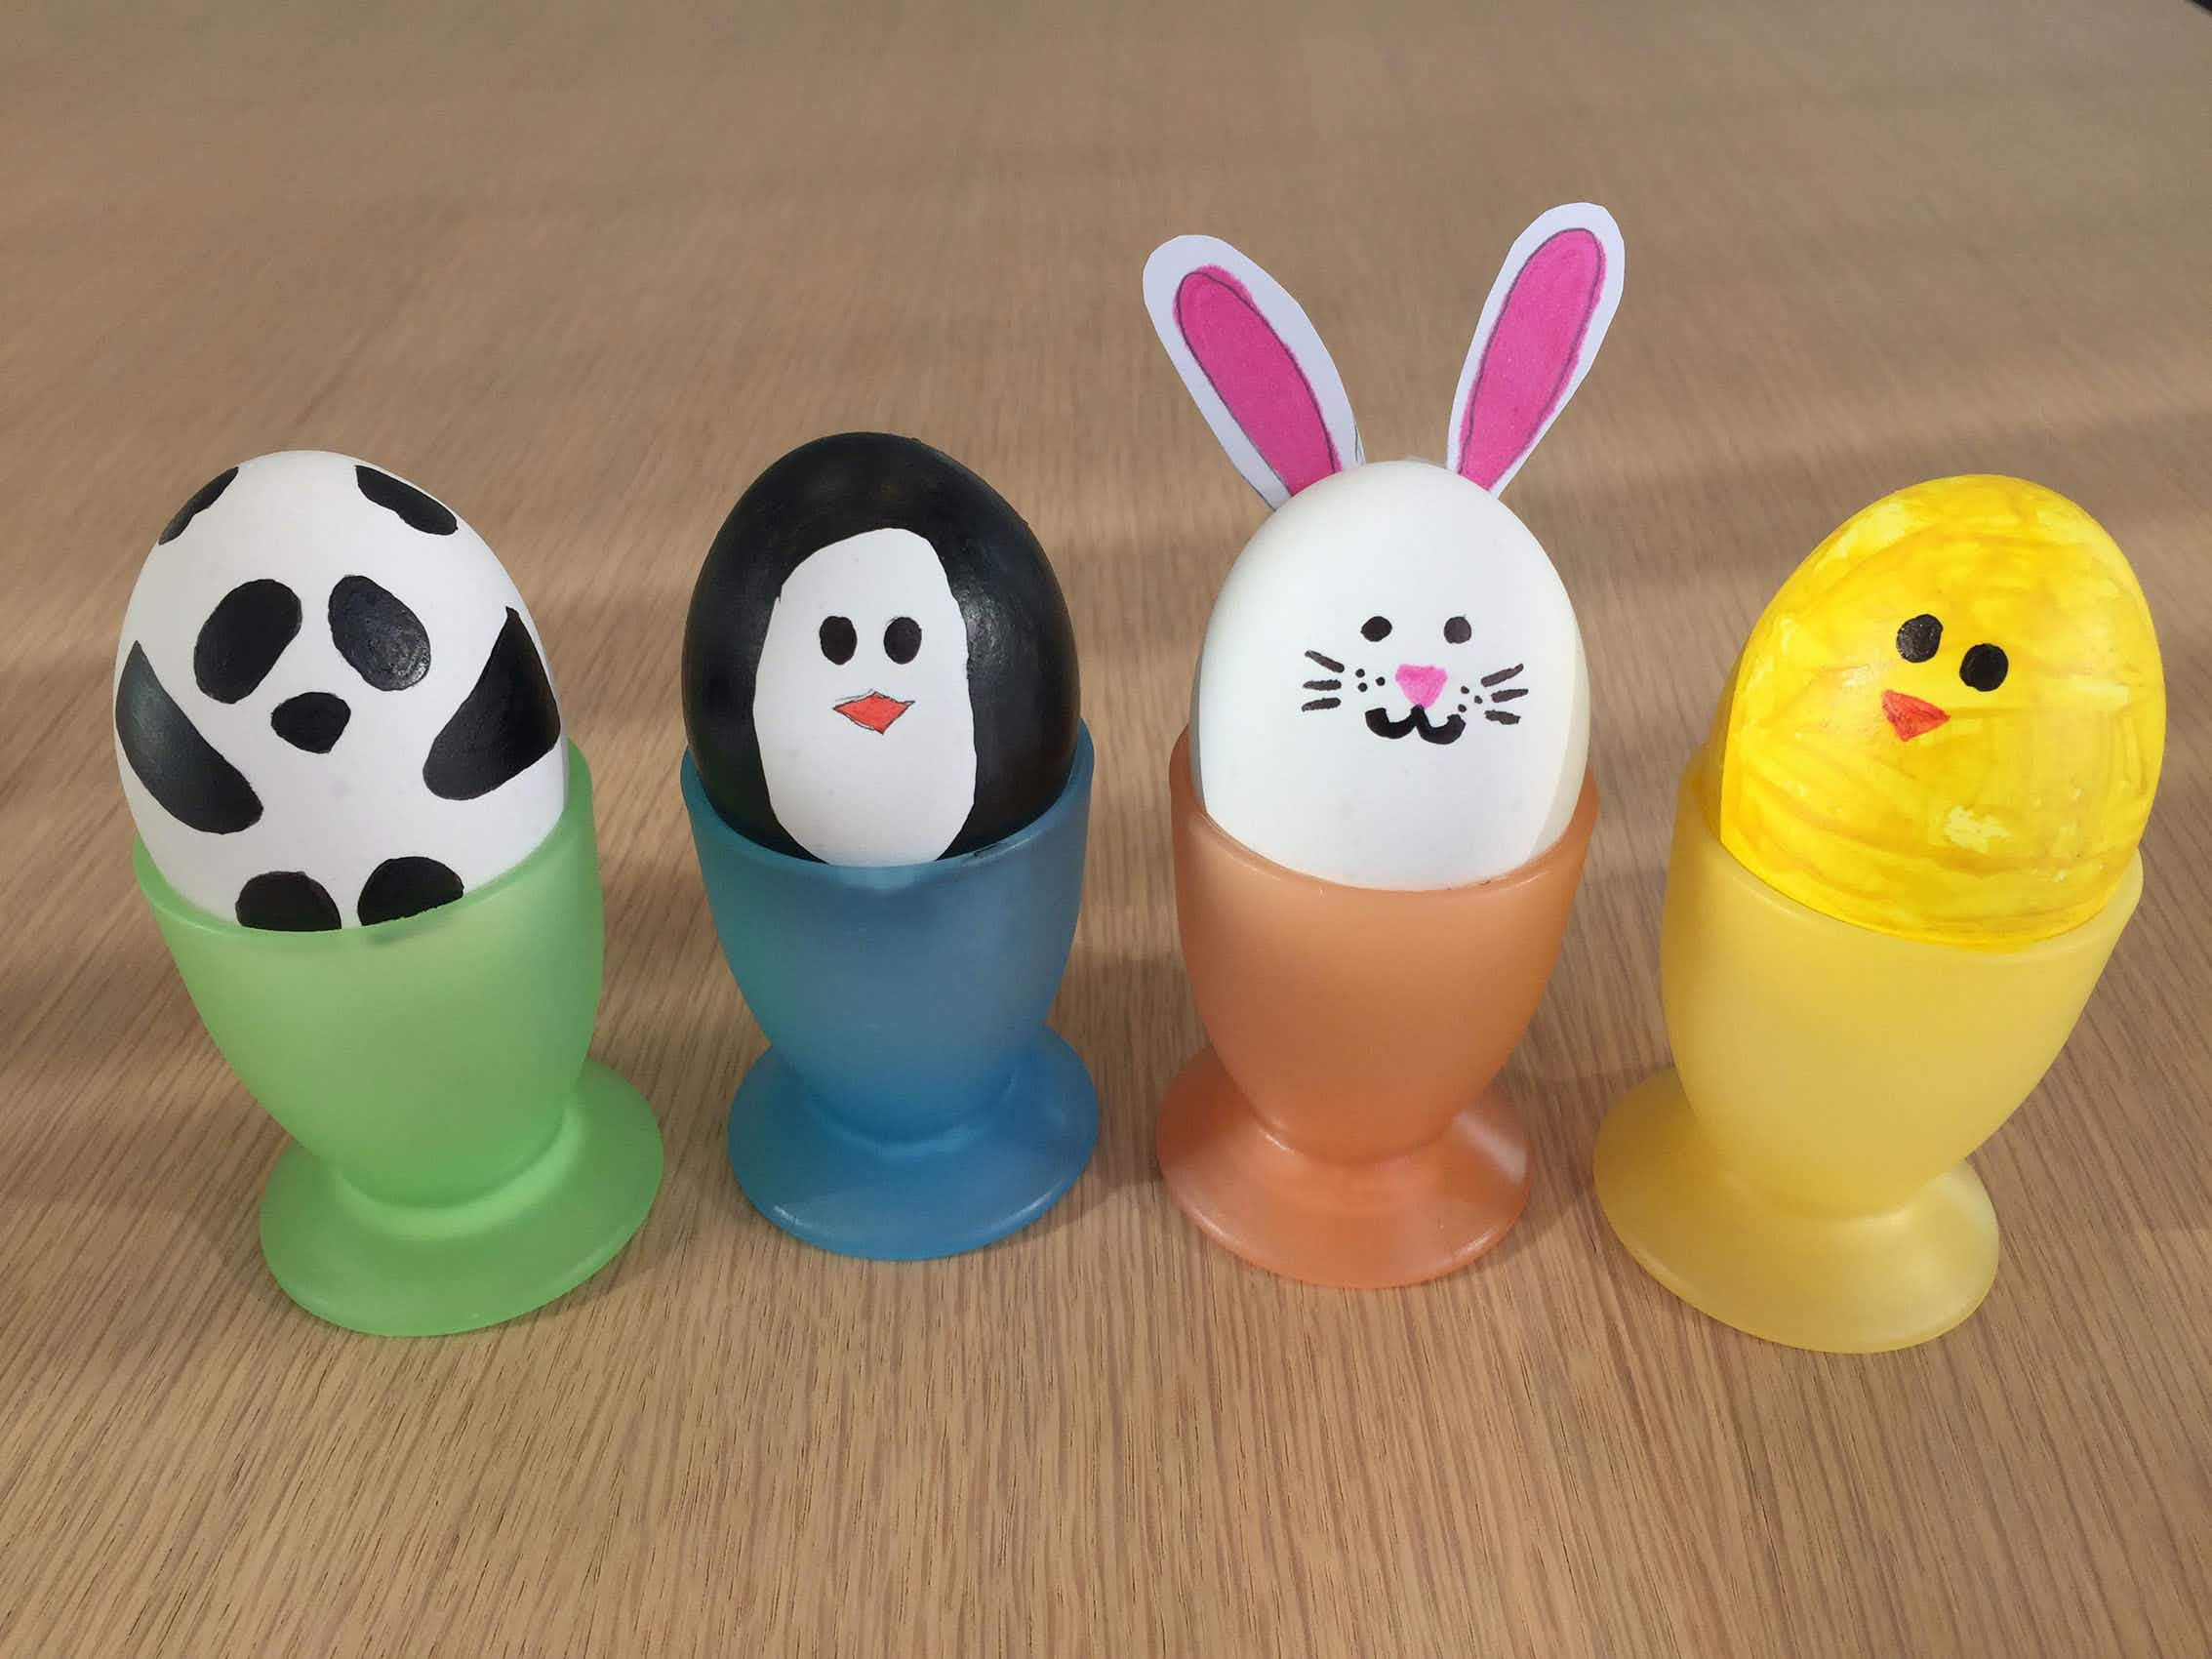 Rainy day activity: paint your own Easter egg